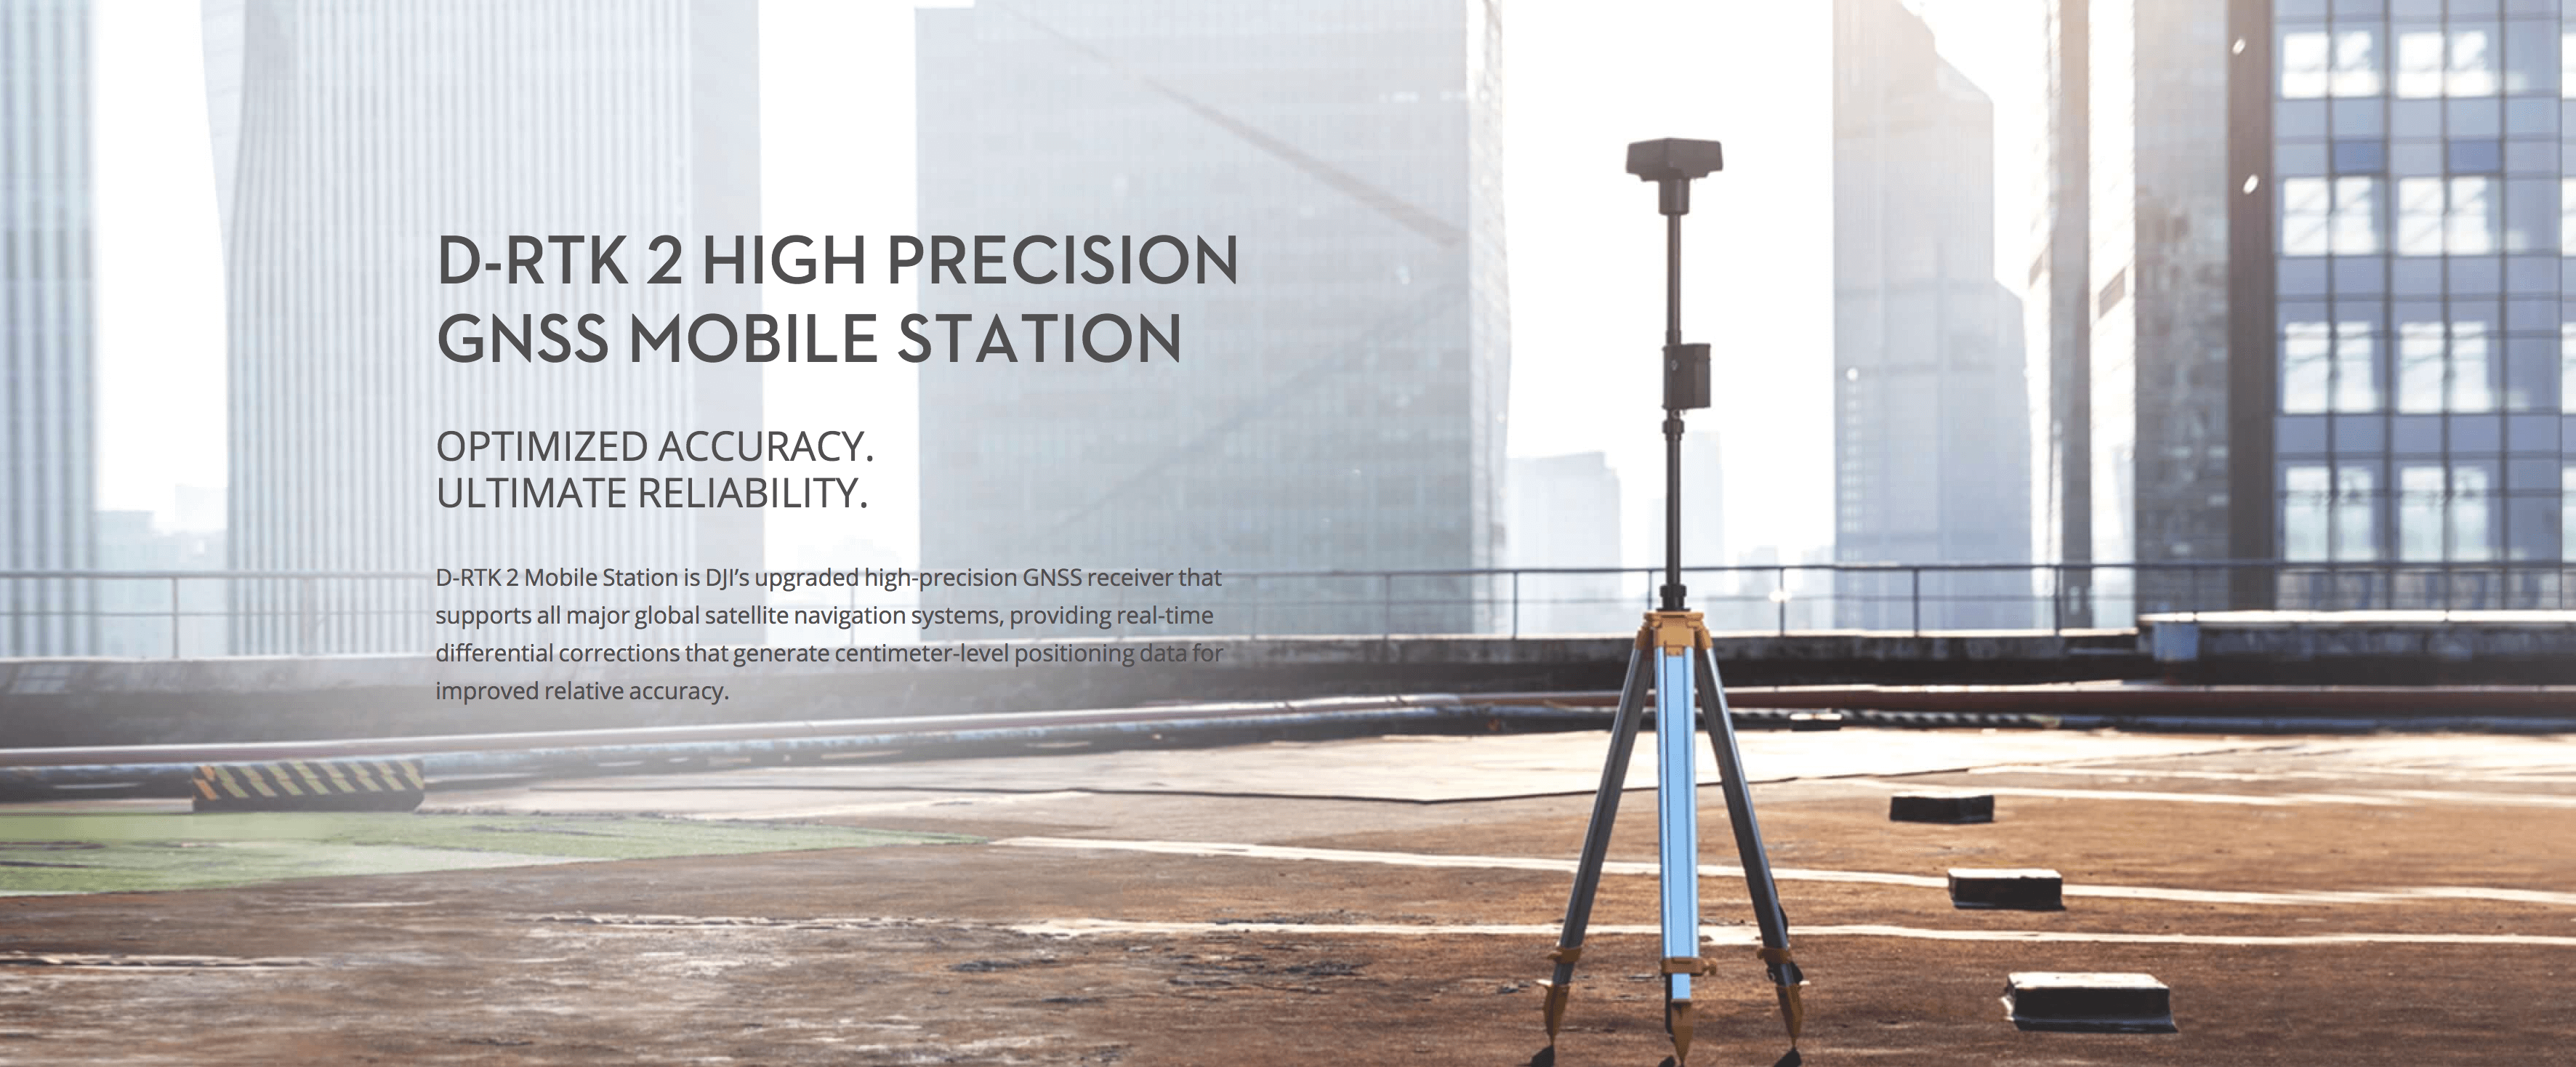 rtk-2-gnss-mobile-station-specs-1